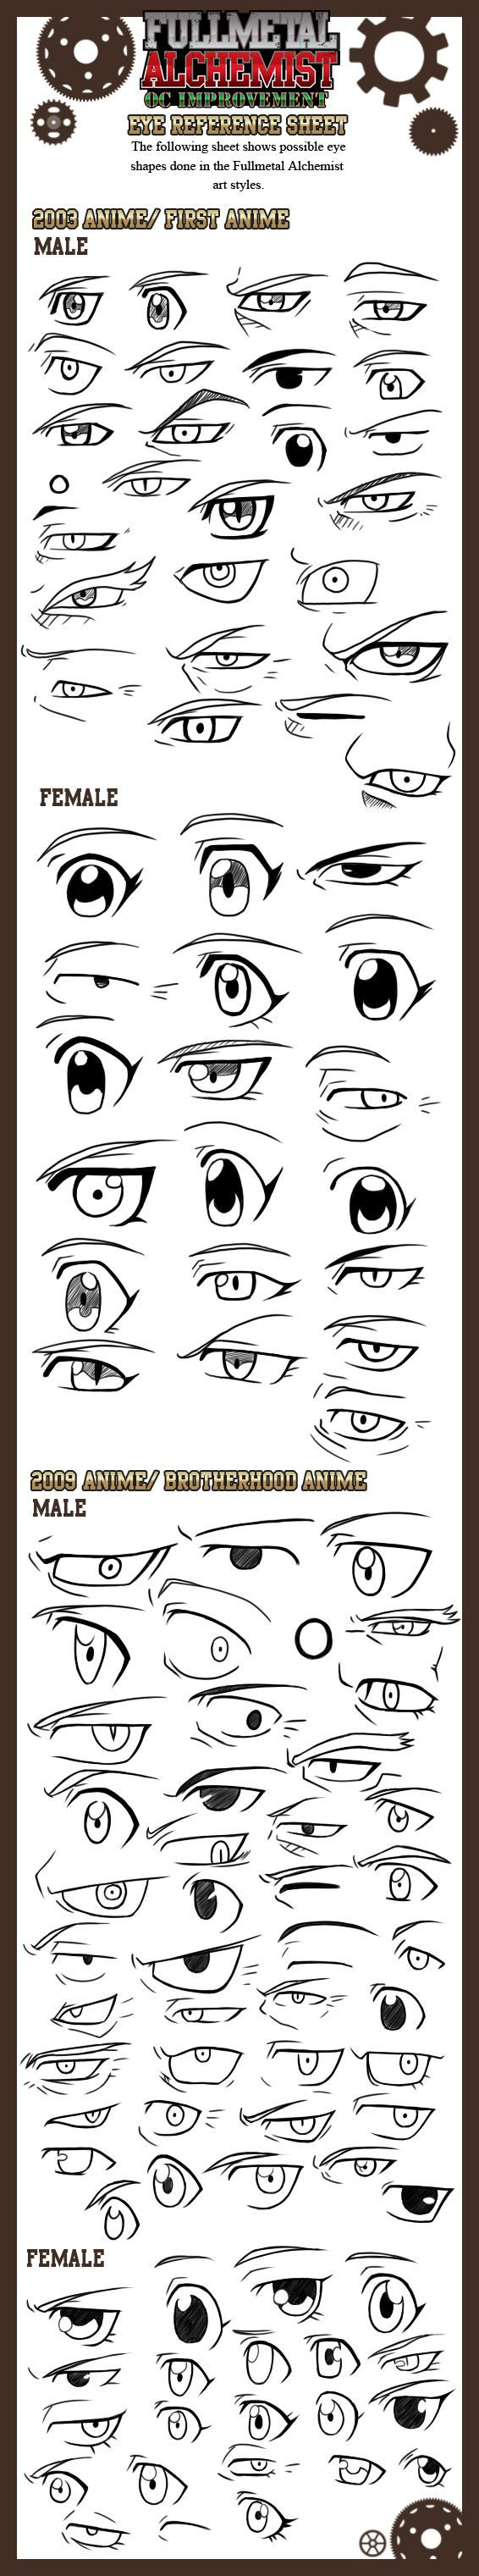 Fma eye reference sheet for both male and female characters